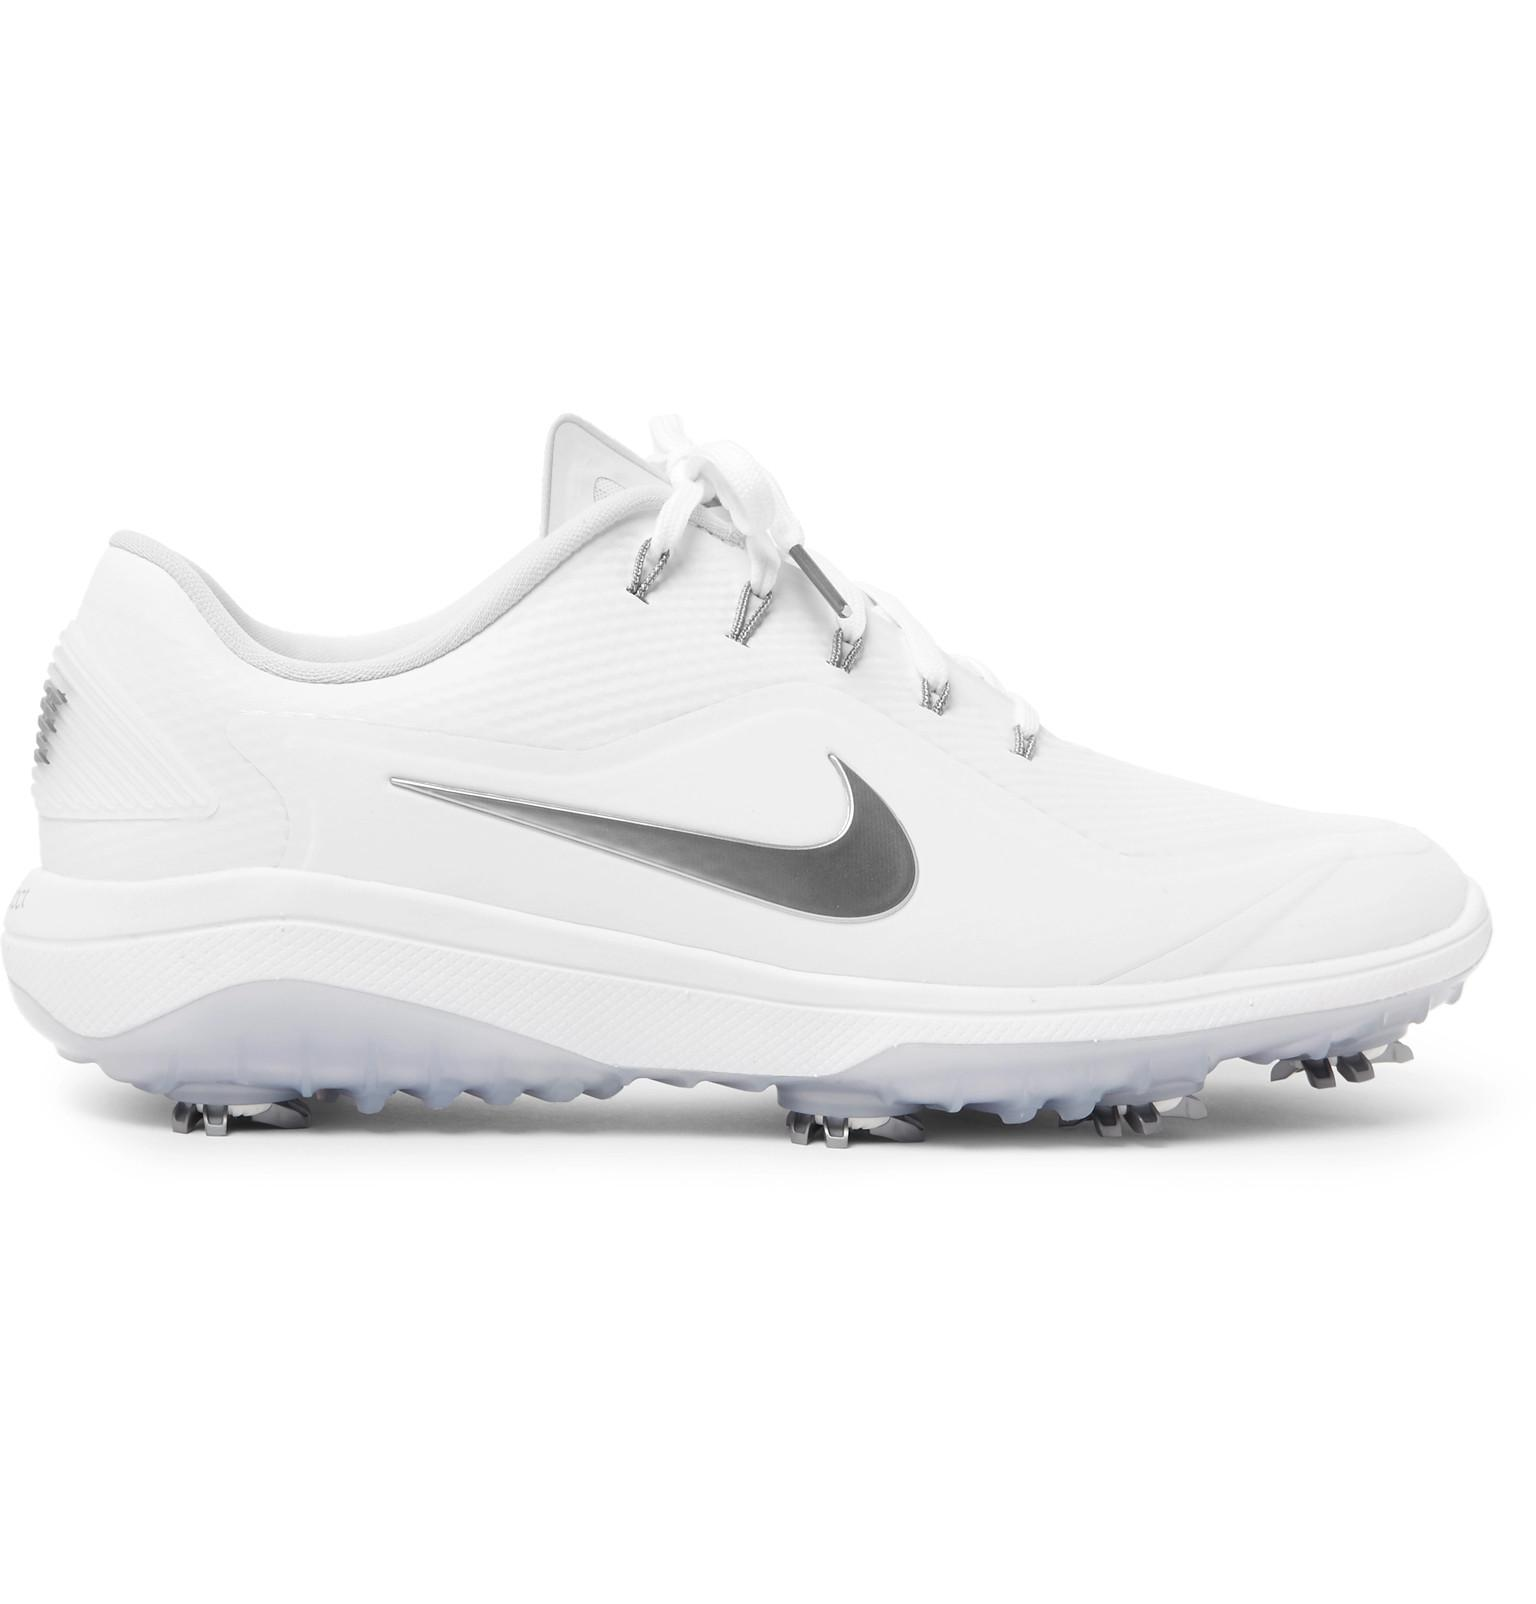 0df09559946 Lyst - Nike React Vapor 2 Coated-mesh Golf Shoes in White for Men